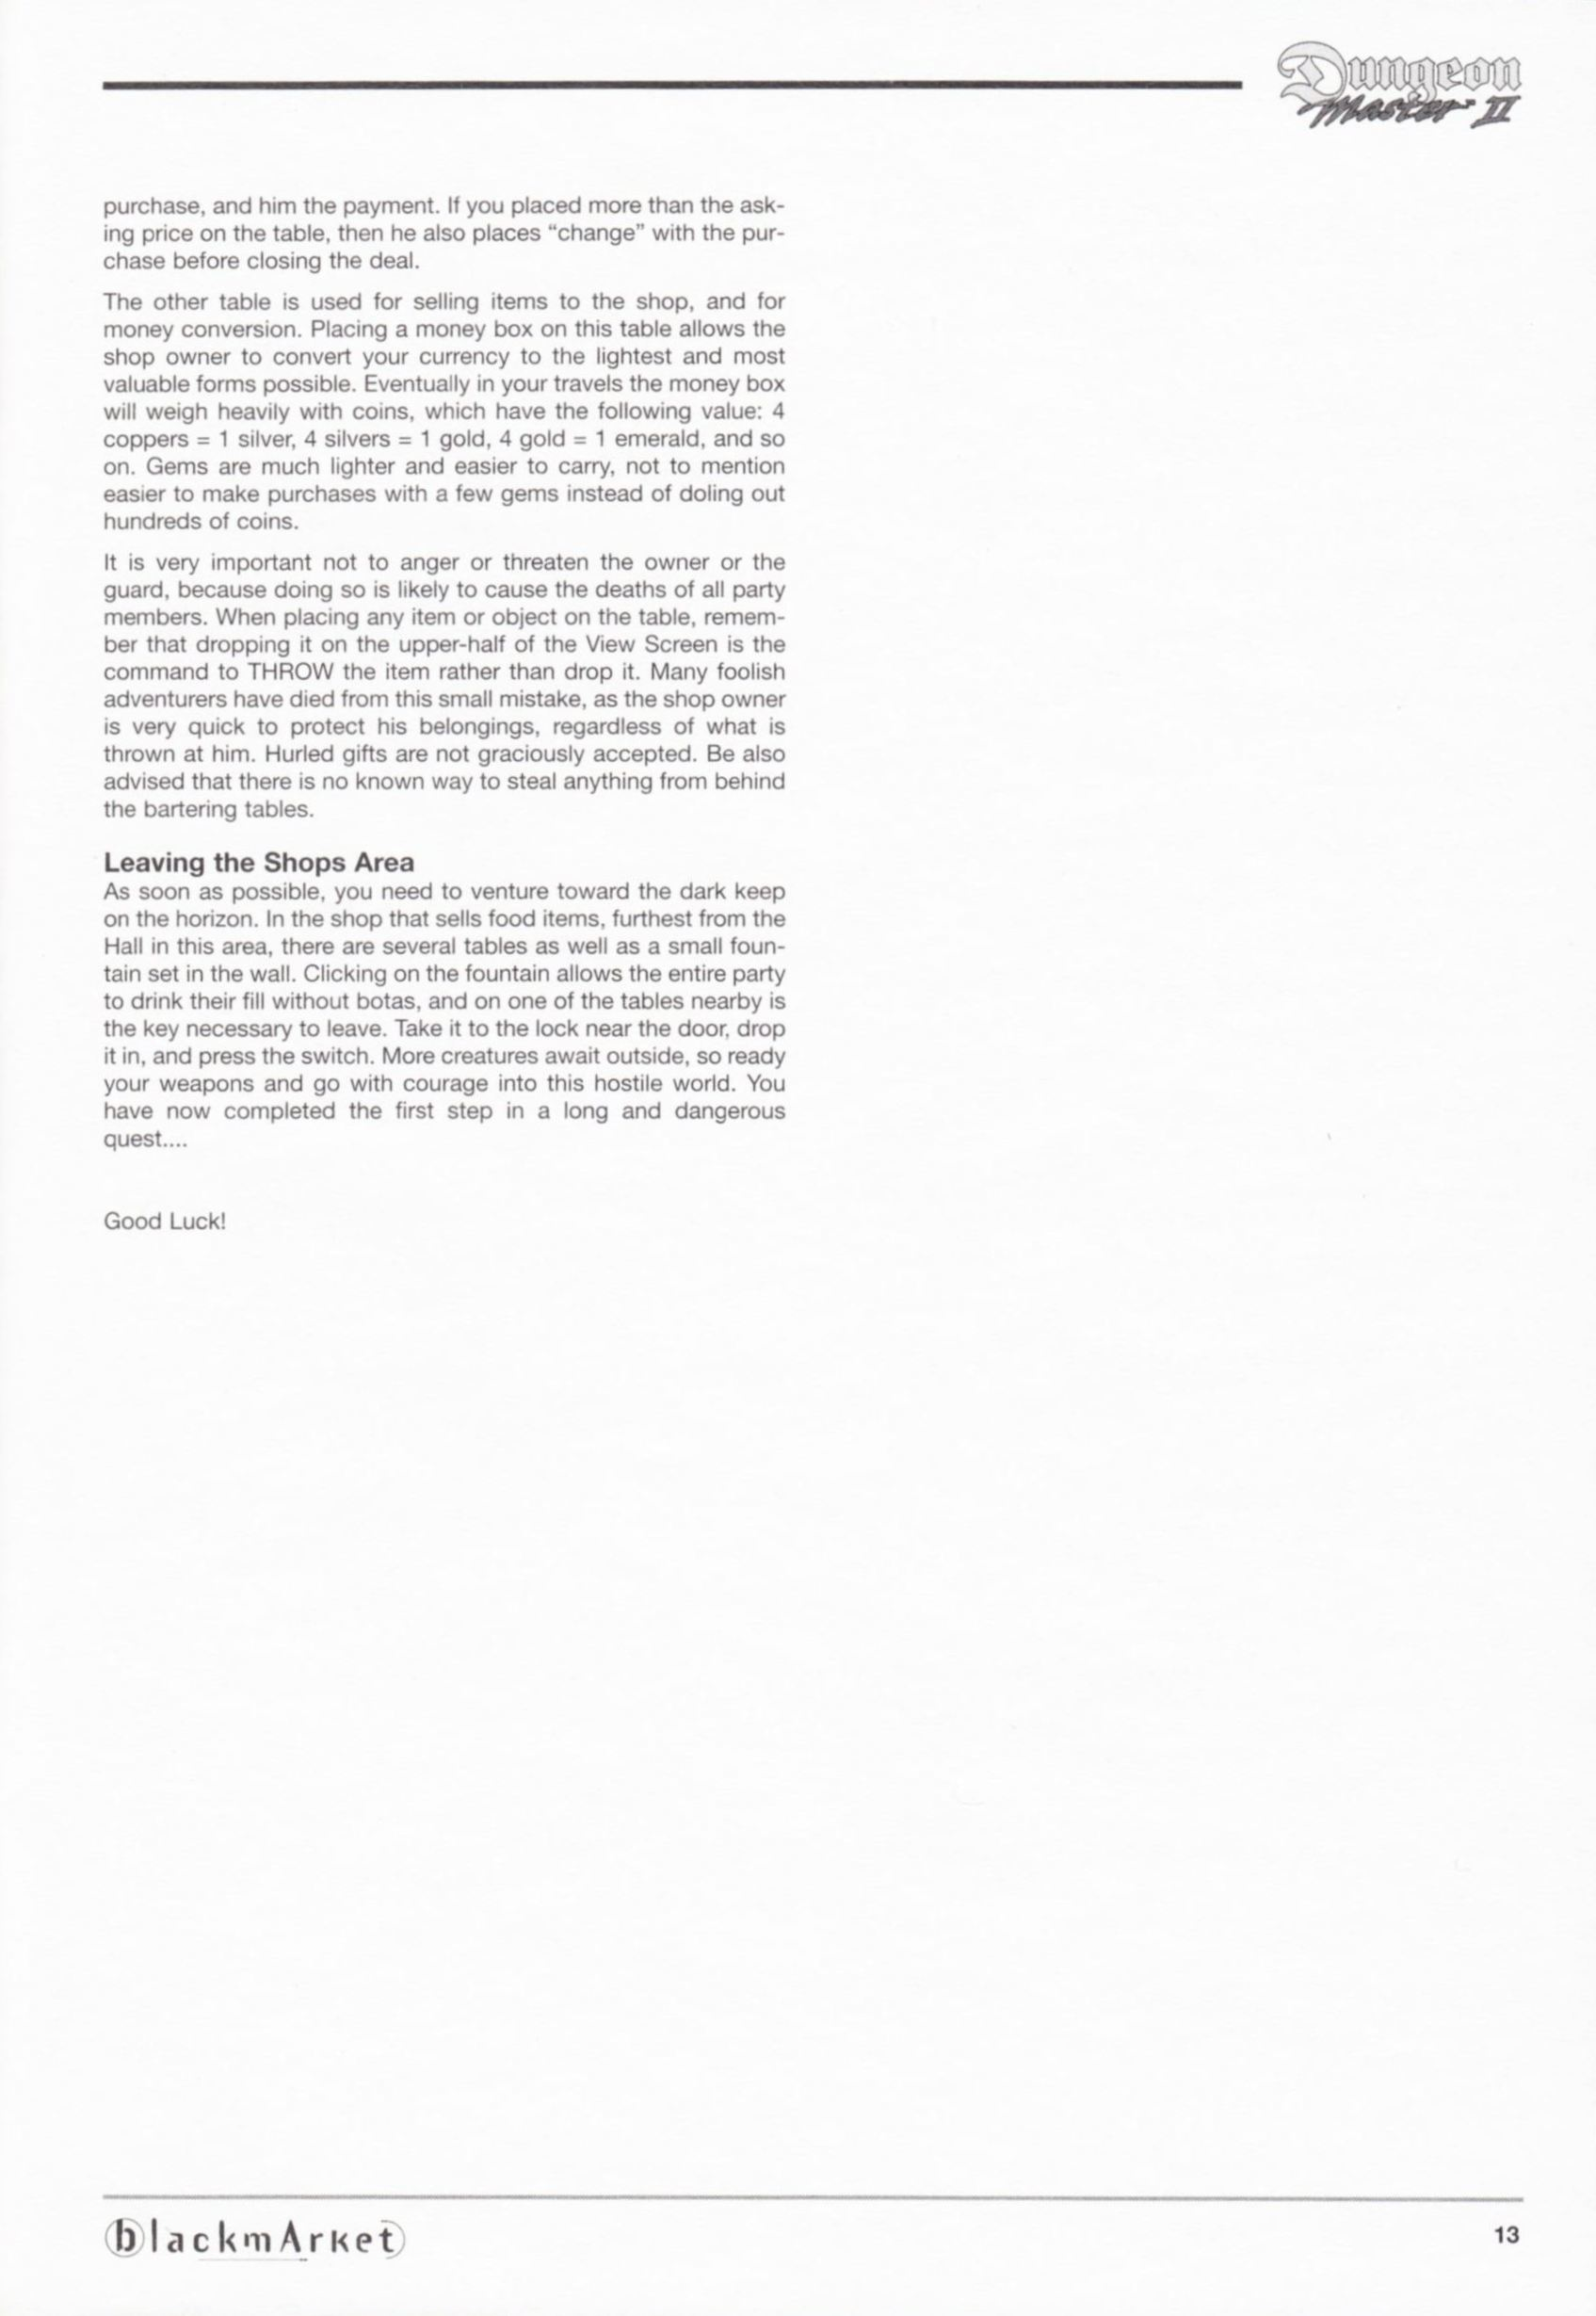 Game - Dungeon Master II - DE - PC - Blackmarket With Manual - Manual - Page 015 - Scan